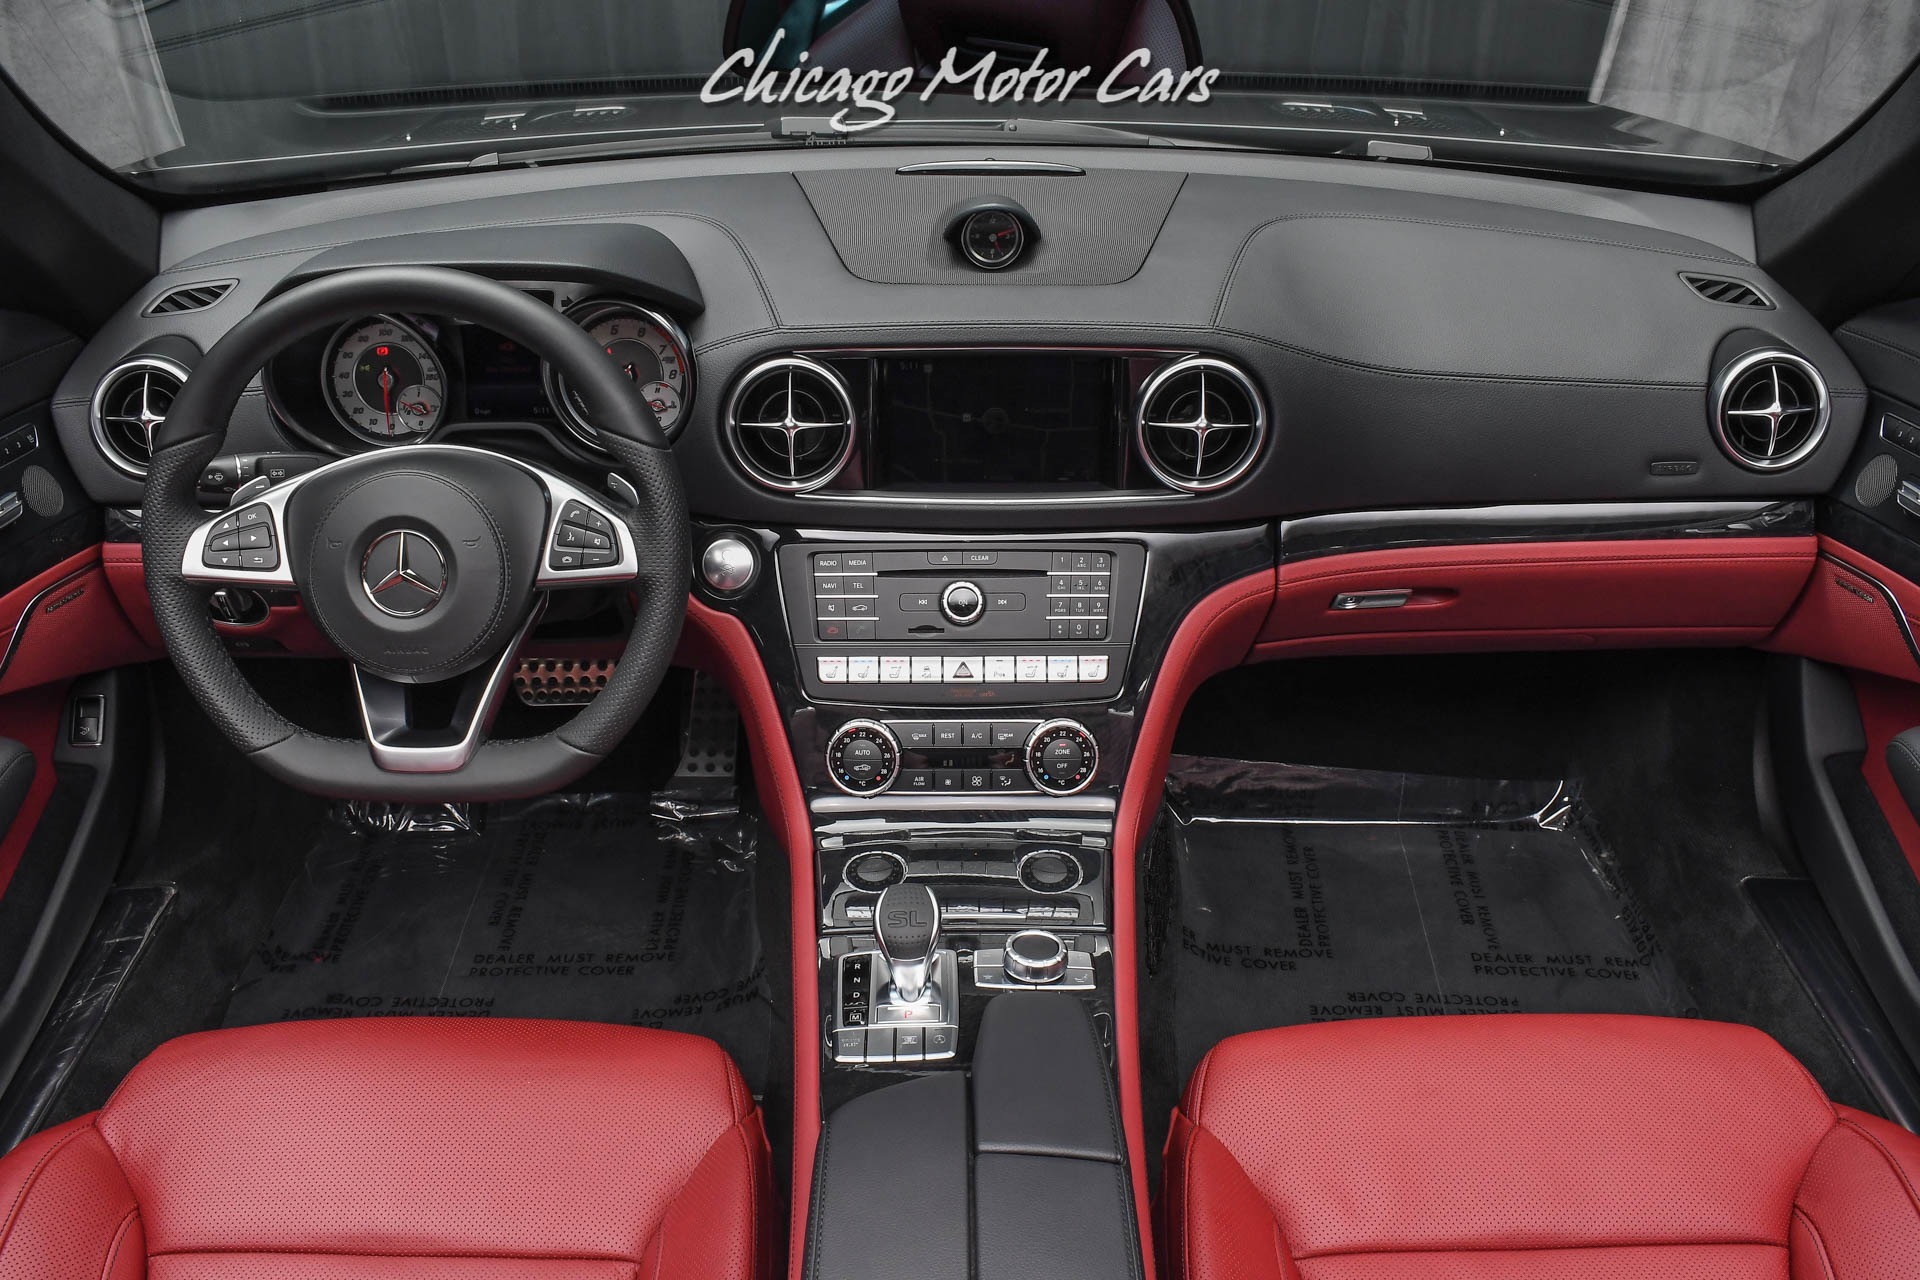 Used-2020-Mercedes-Benz-SL450-Convertible-Only-83-Miles-Intelligent-Drive-Package-LIKE-BRAND-NEW